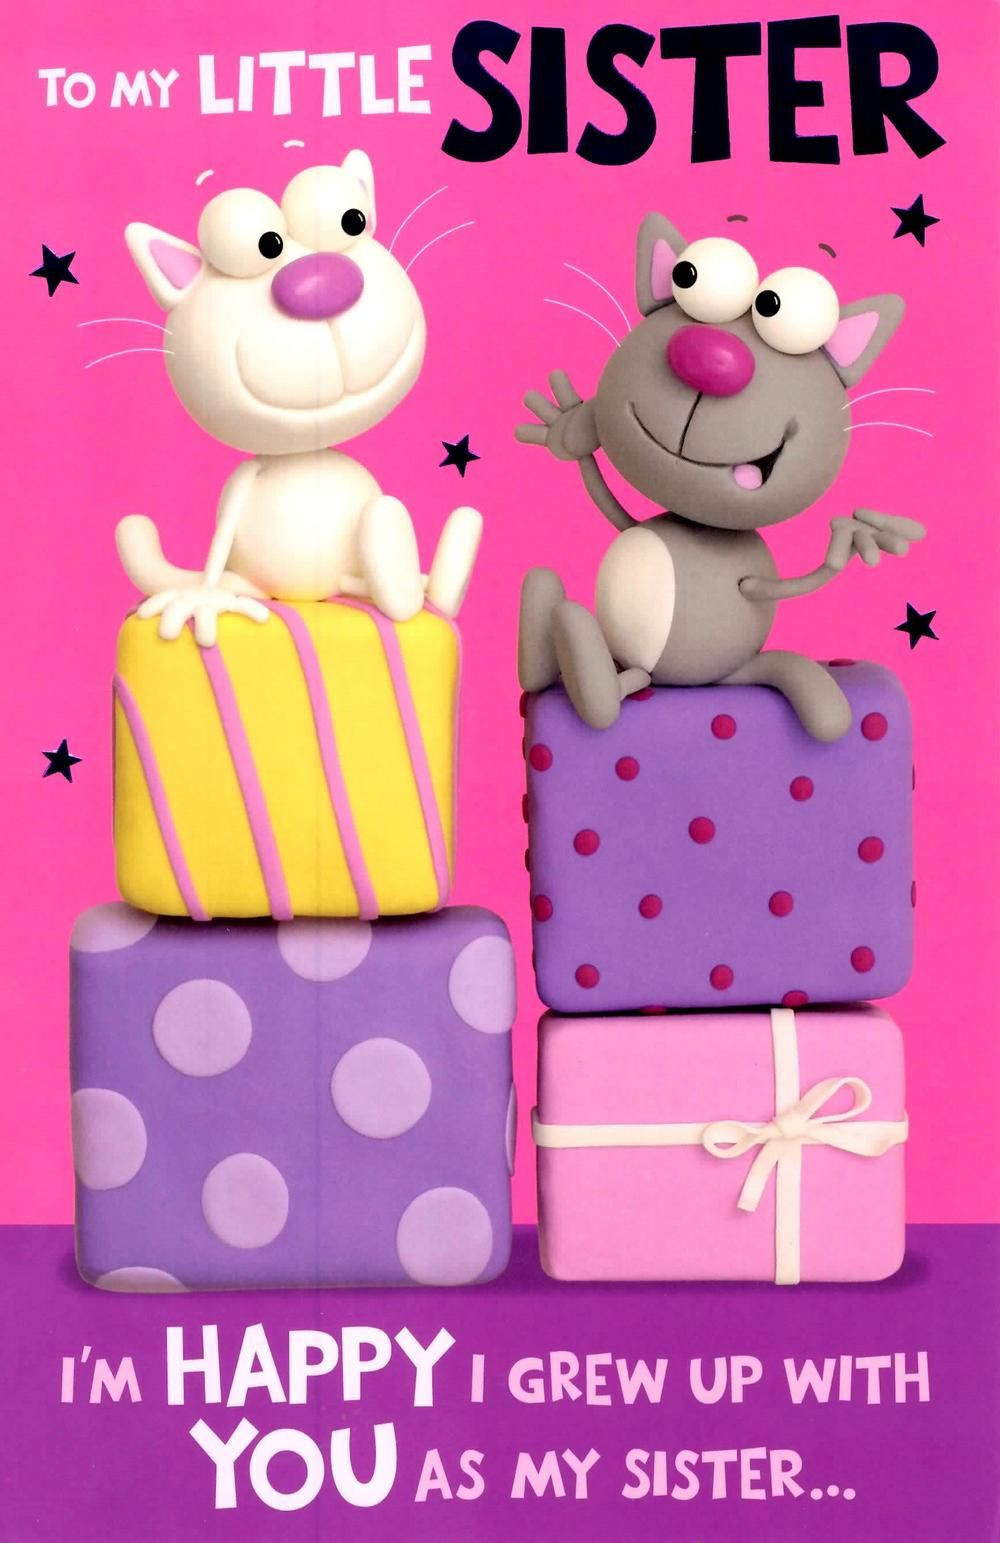 Best ideas about Funny Birthday Wishes For Sister . Save or Pin Happy birthday wishes for sister images and pictures Now.